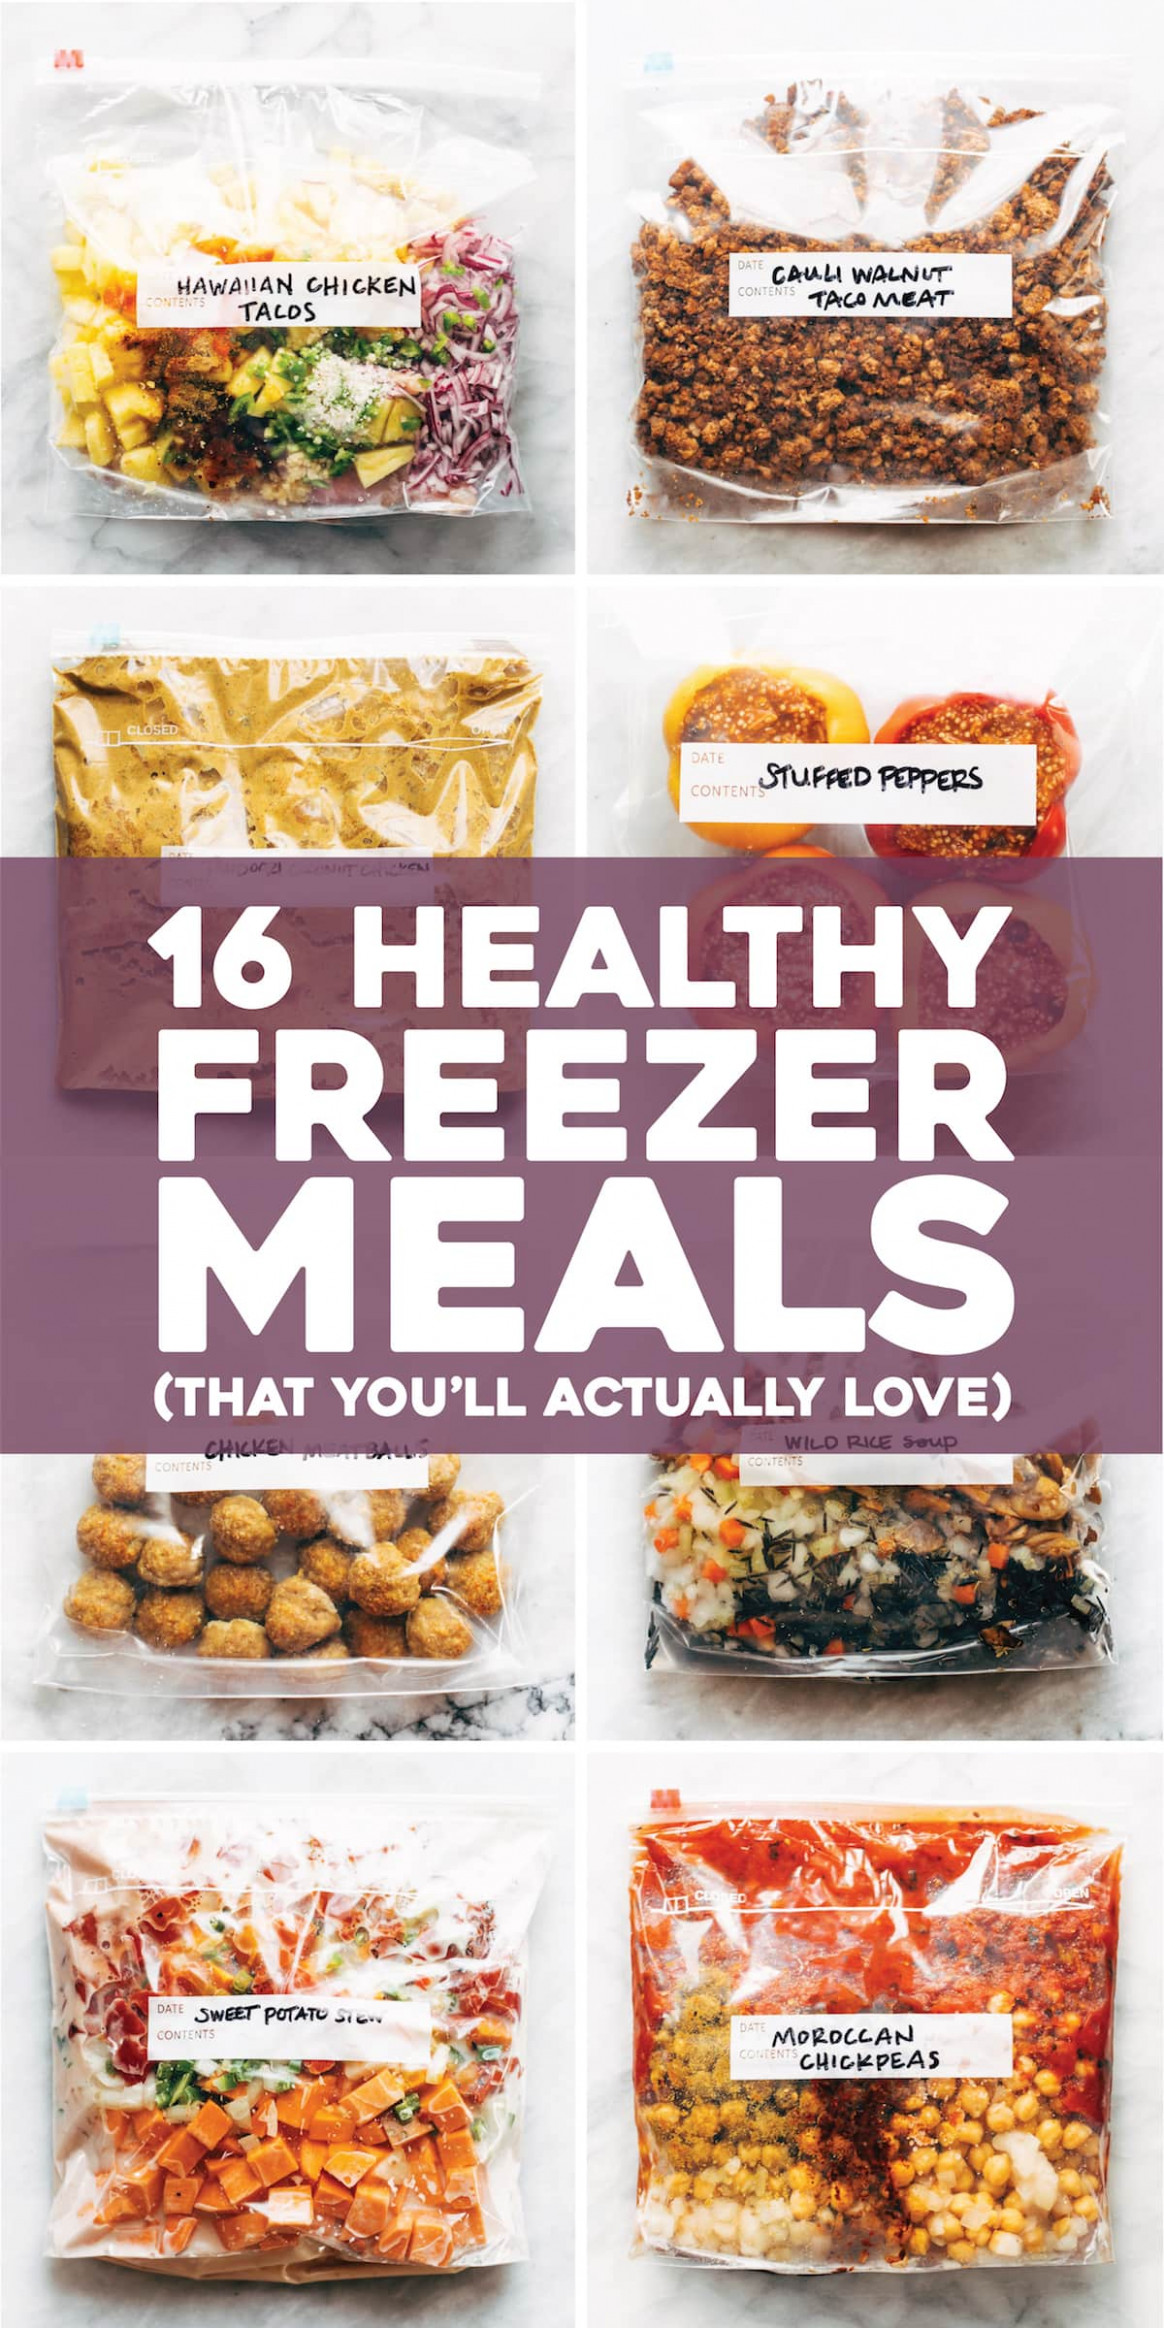 14 Healthy Freezer Meals (That You'll Actually Love) - Pinch ..